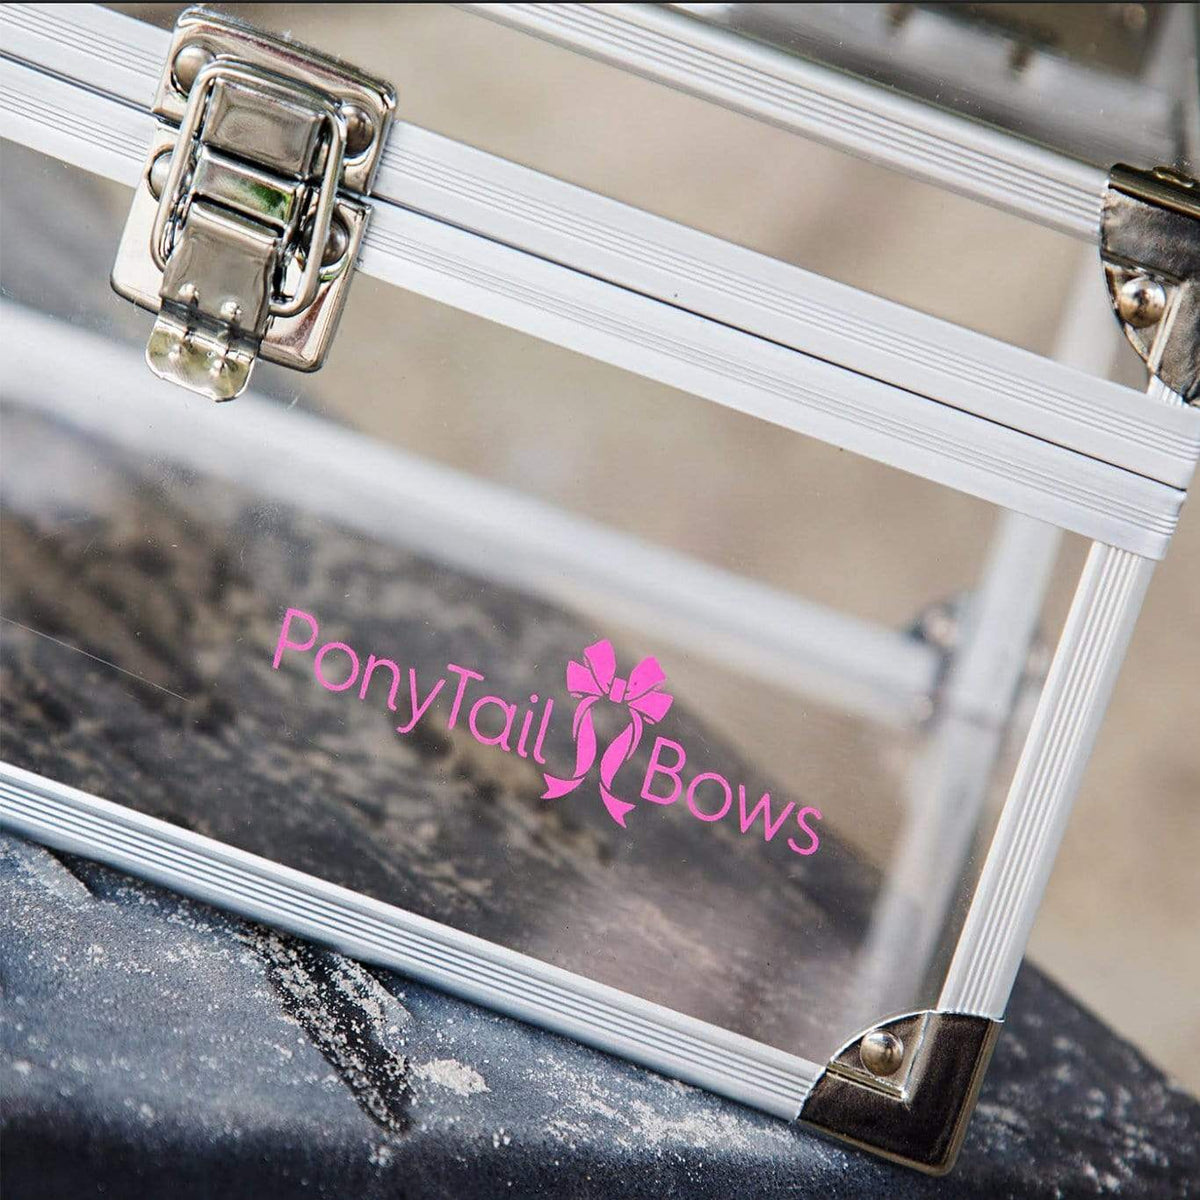 Ponytail Bows Bow Box The Bow Box equestrian team apparel online tack store mobile tack store custom farm apparel custom show stable clothing equestrian lifestyle horse show clothing riding clothes horses equestrian tack store